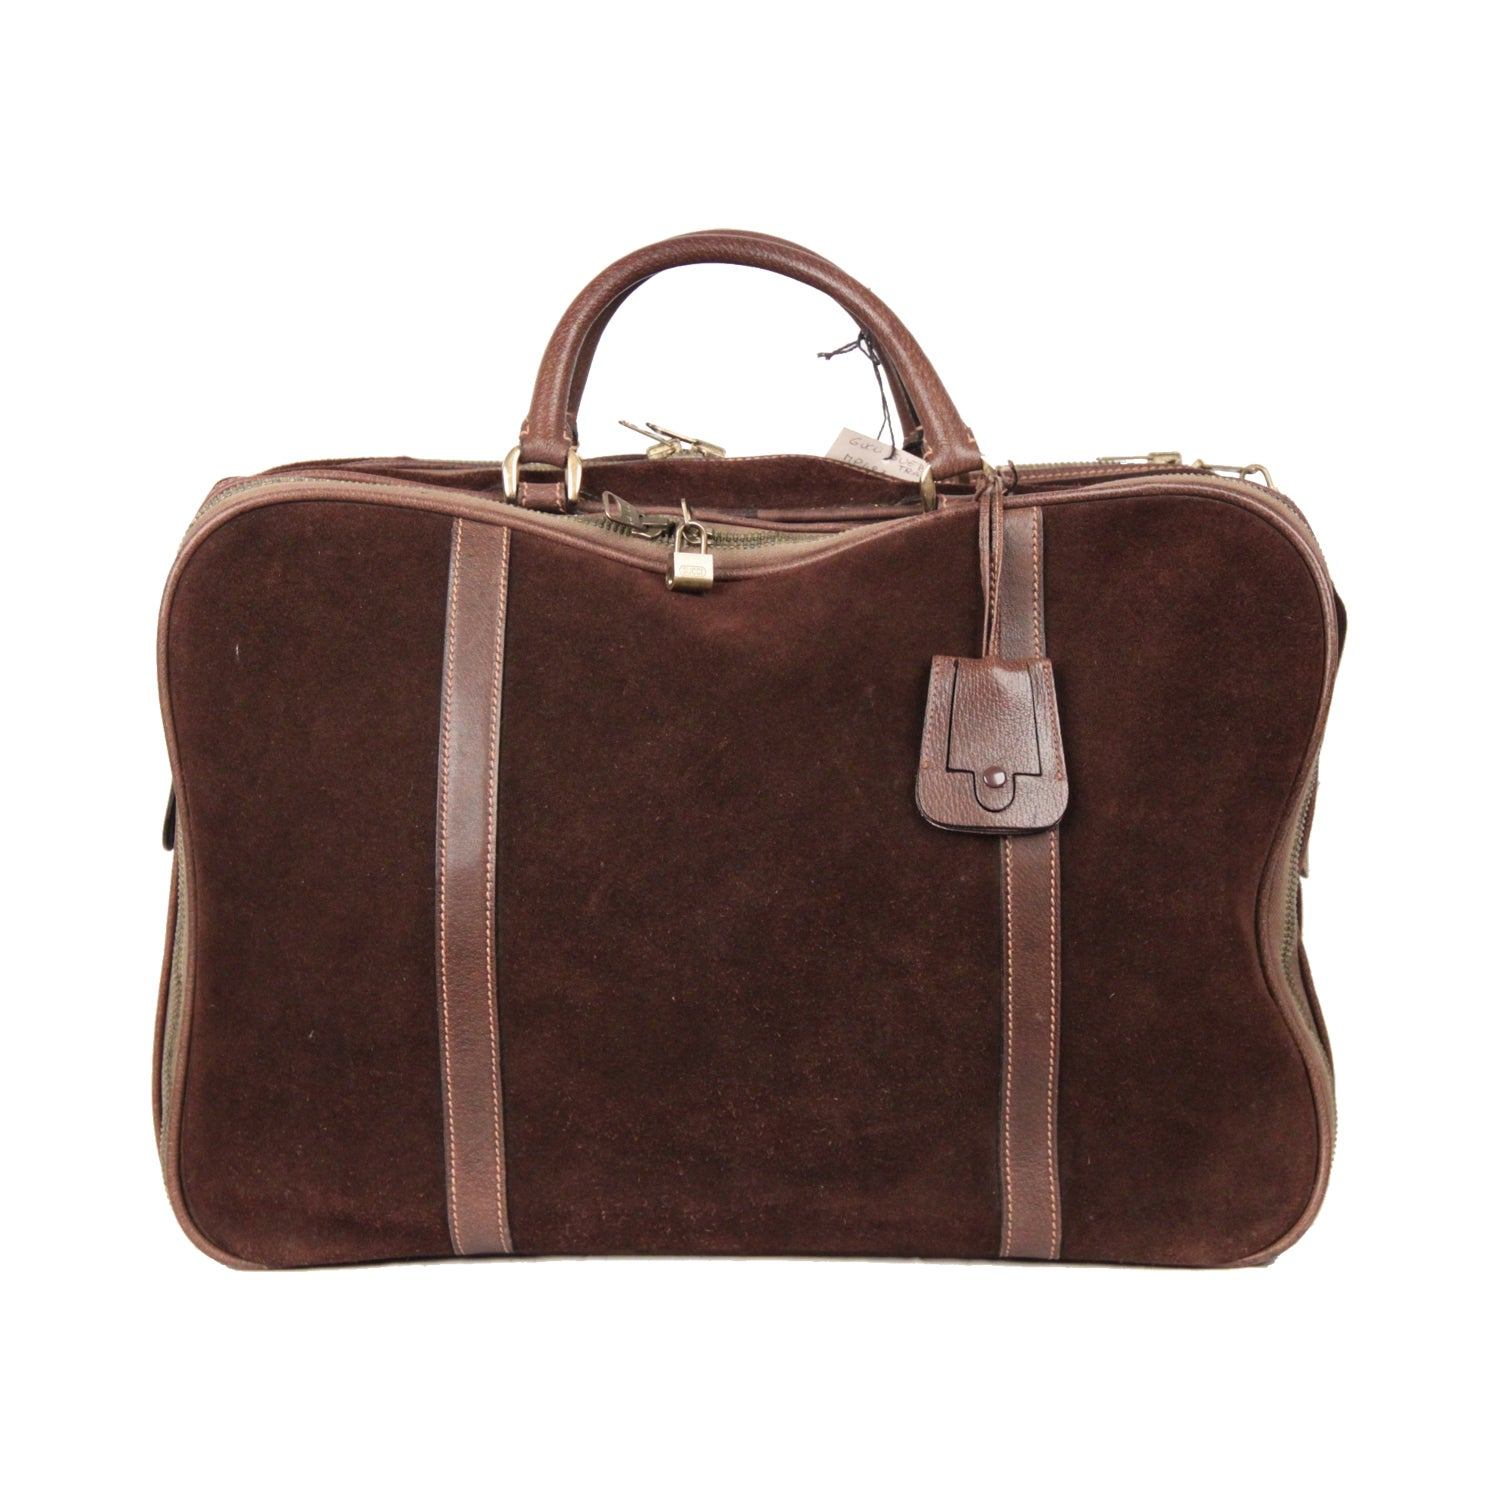 80319098687cdb GUCCI Vintage Brown Suede CABIN SIZE SUITCASE Travel Bag at 1stdibs